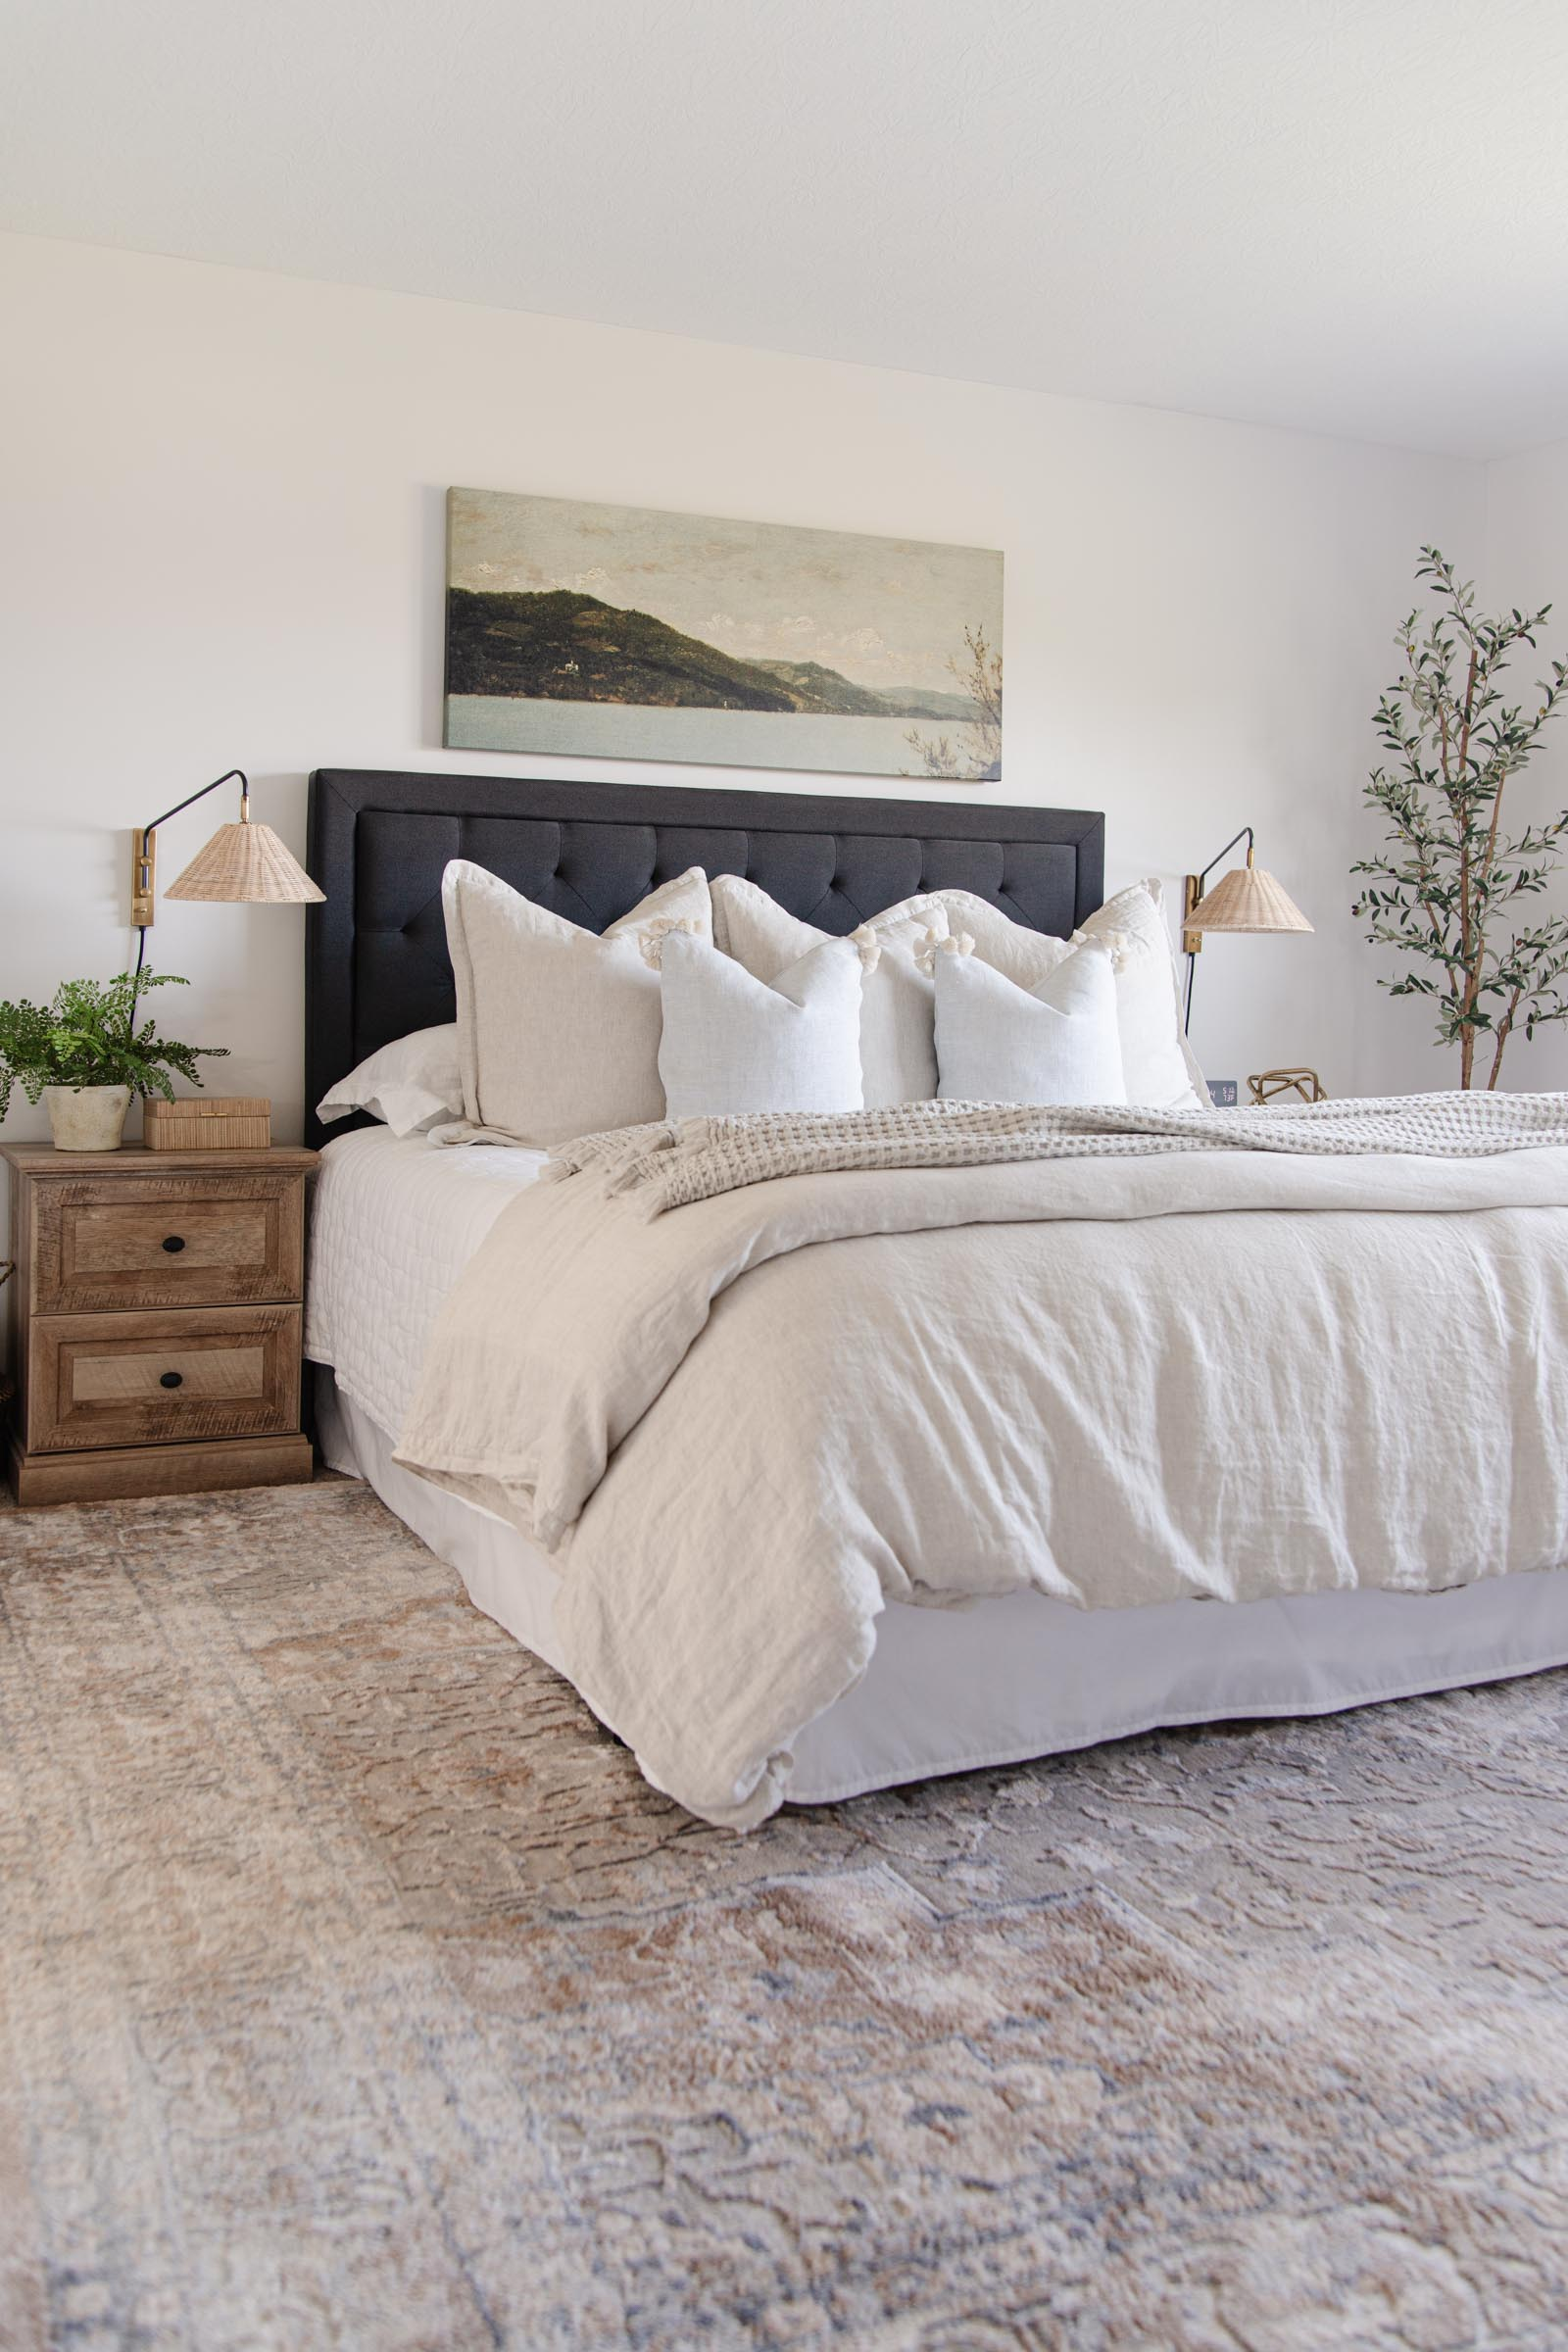 neutral bedroom with charcoal upholstered headboard, linen duvet cover, rattan wall sconces, faux olive tree, beige ivied medallion rug